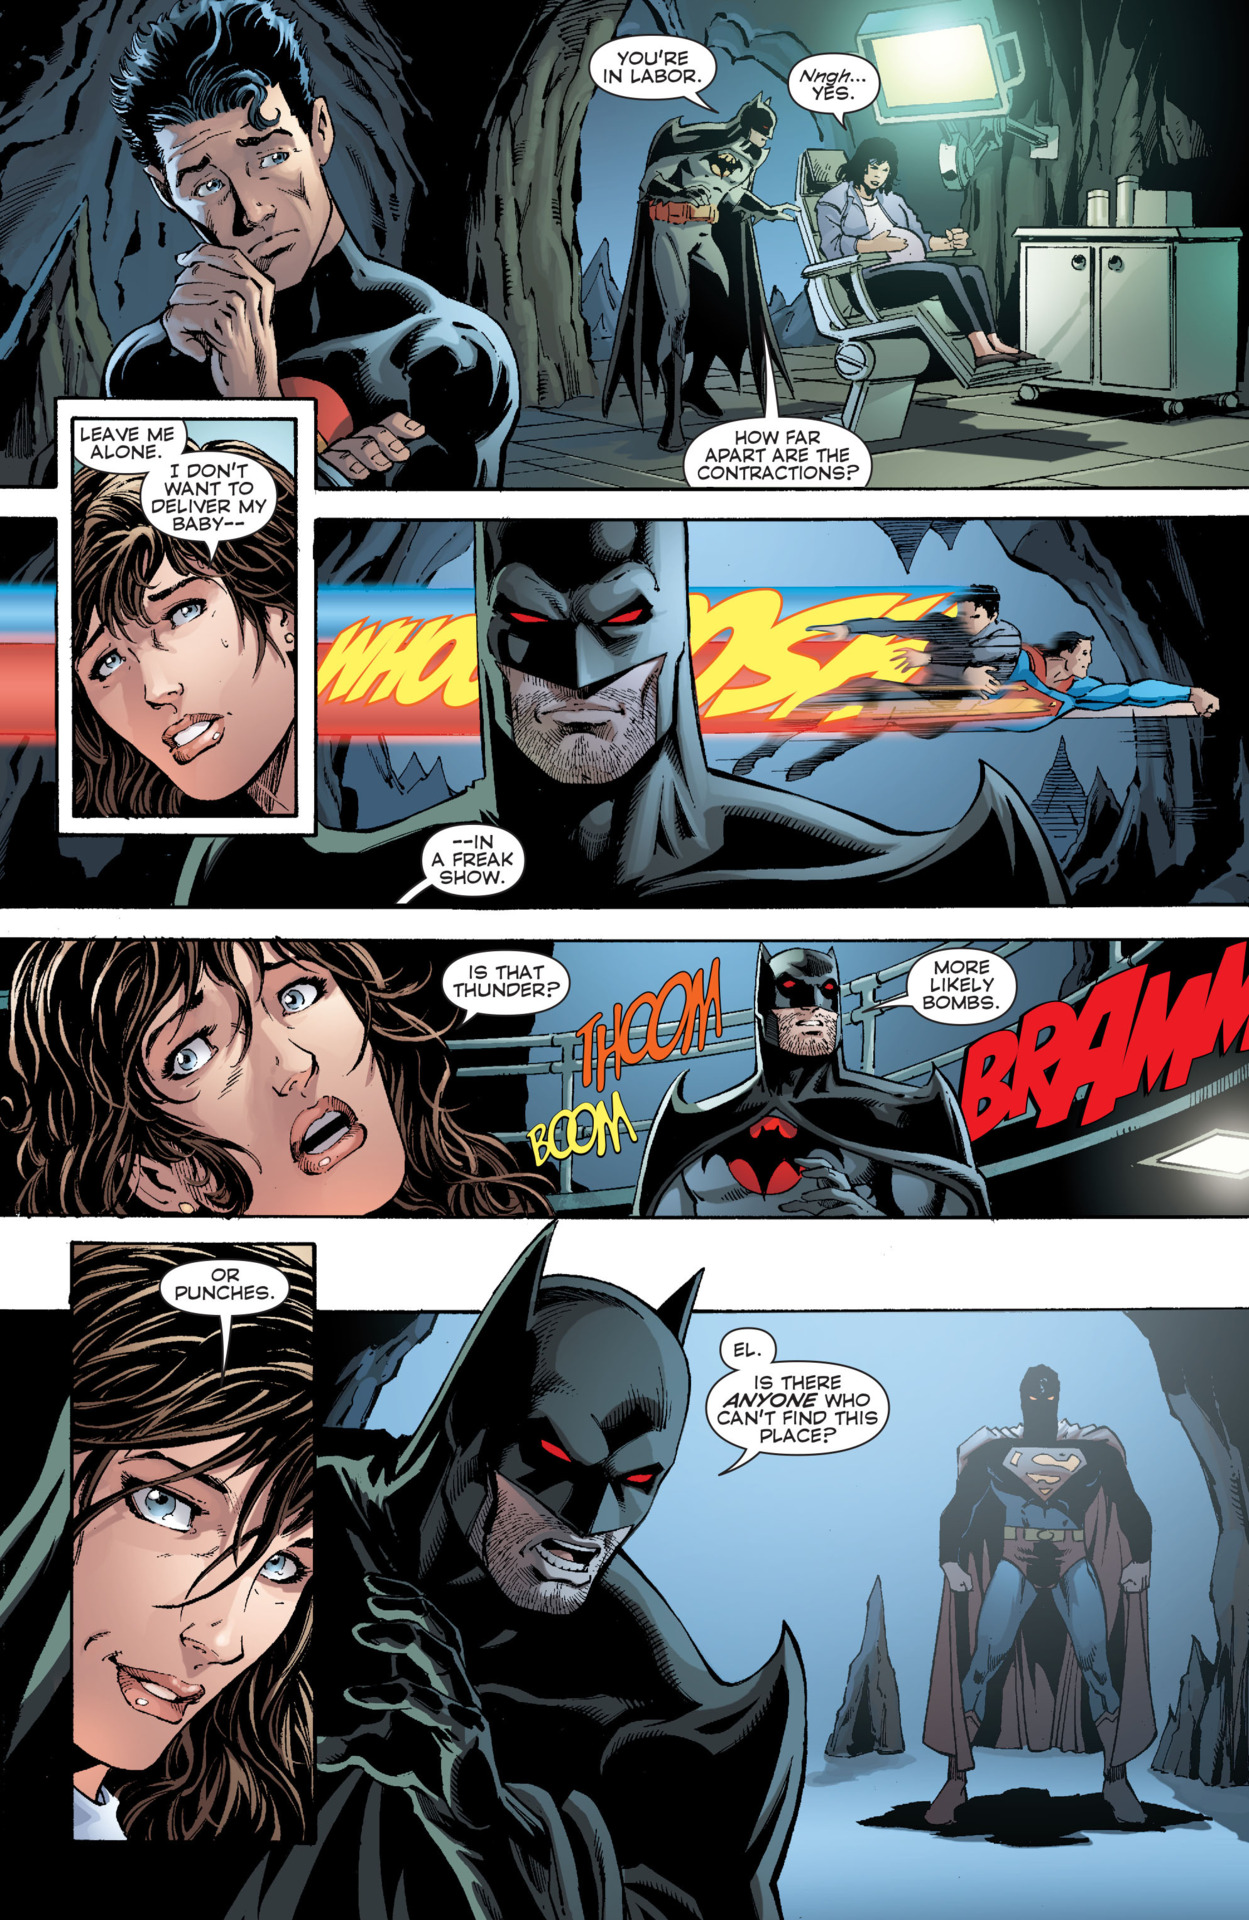 Superman quickly defeating a version of him coming from an alternate universe